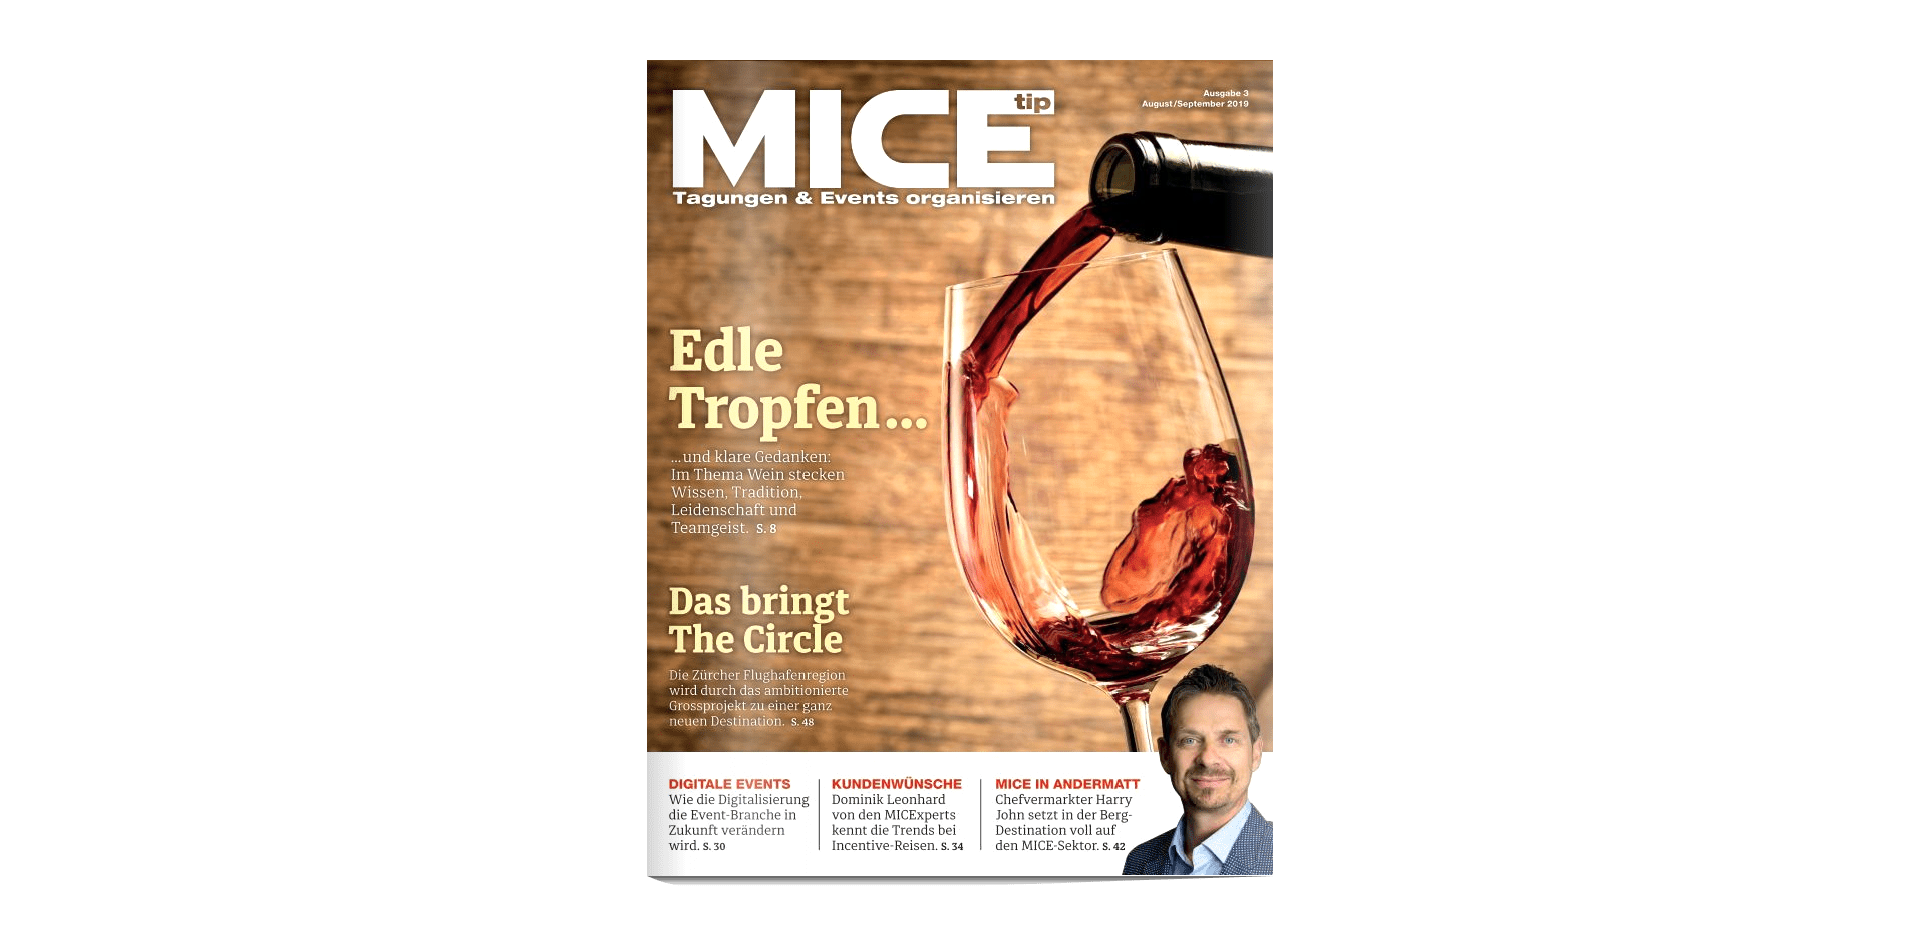 Mice-Magazin